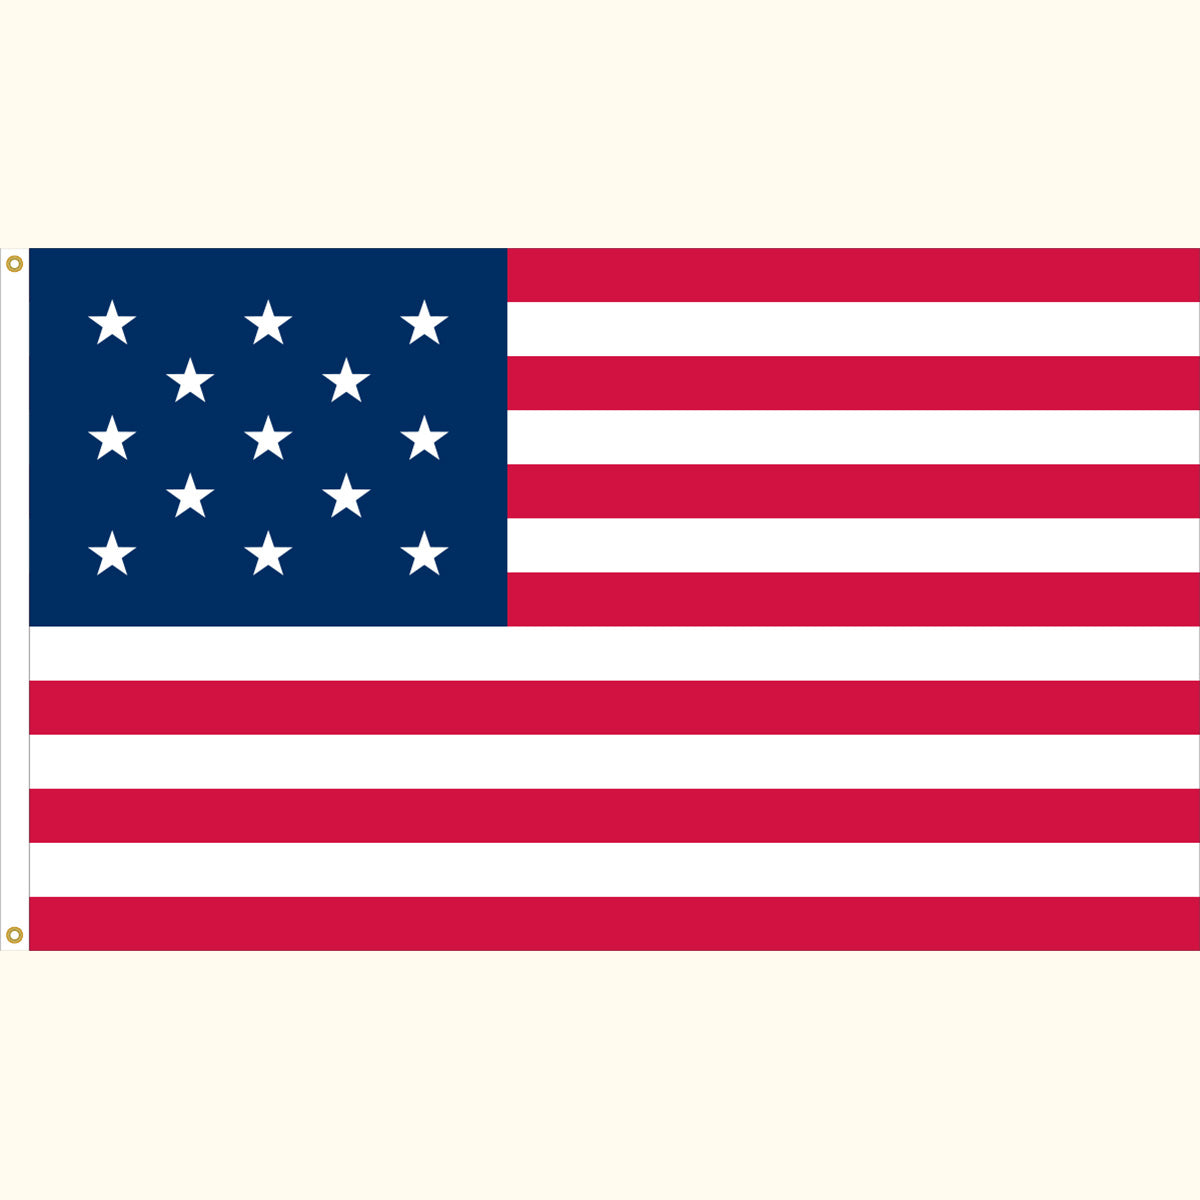 American Flags Historical – Red Blooded American®